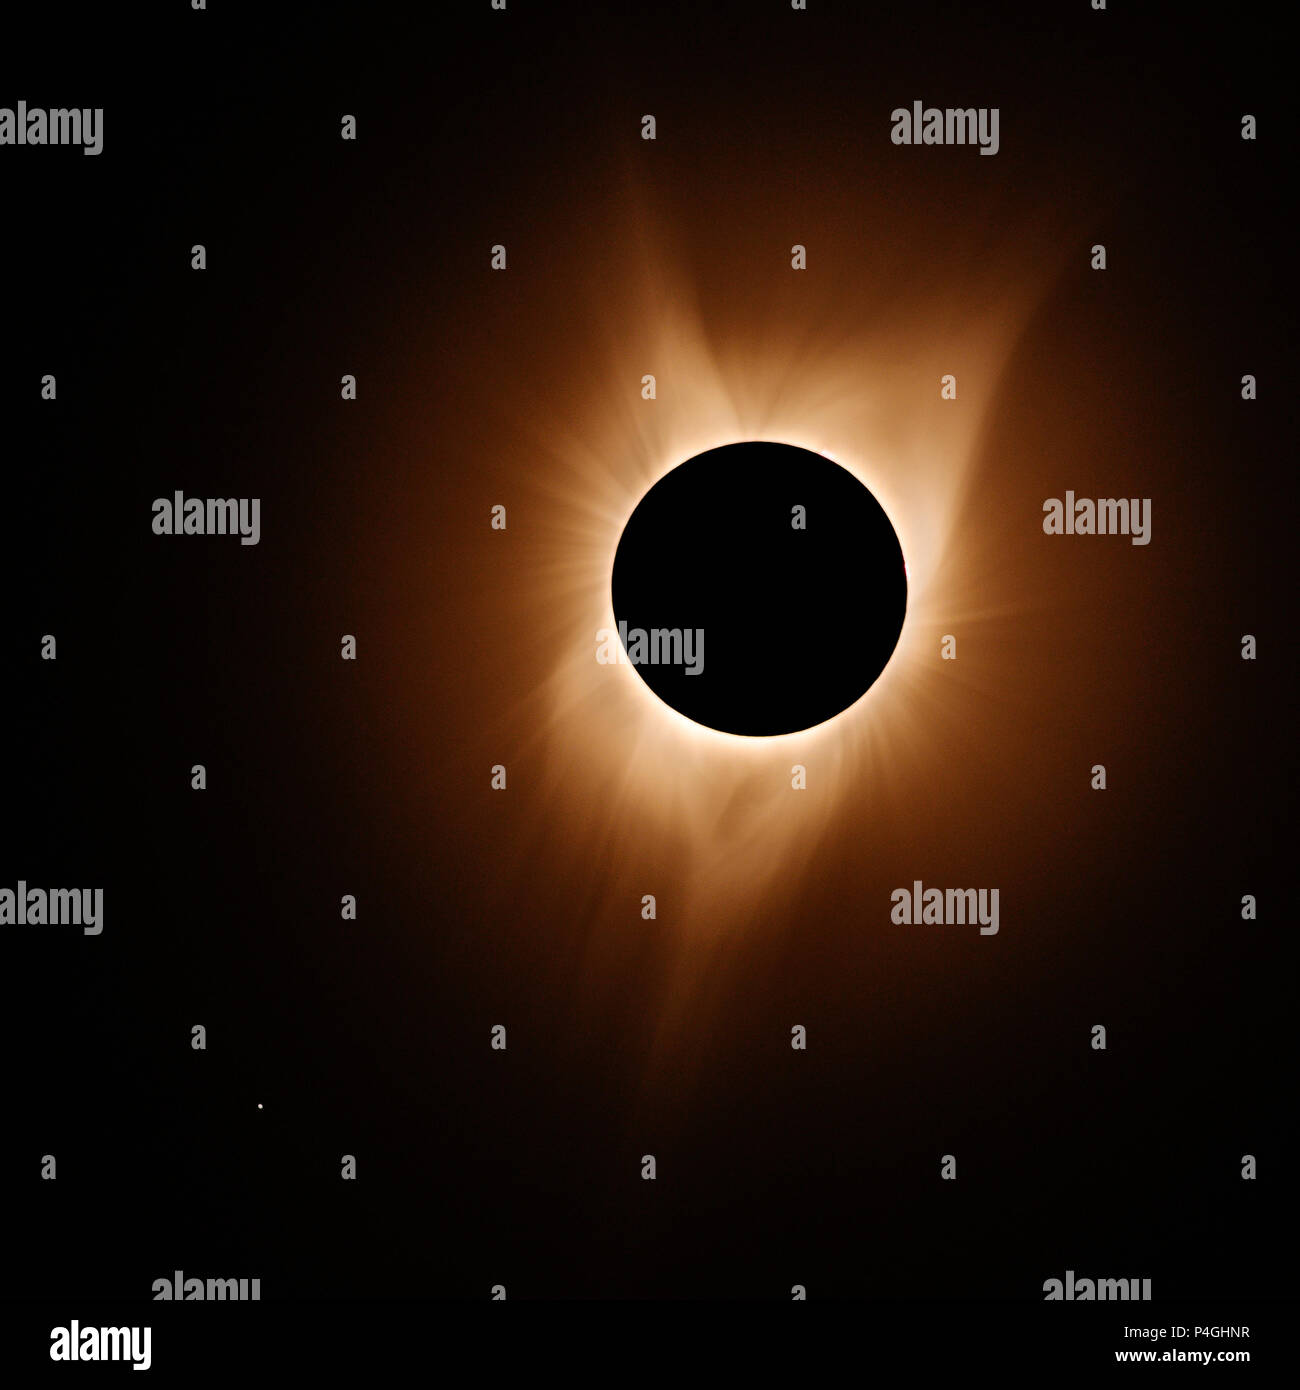 Total solar eclipse 2017 near John Day Oregon with exposures bracketed and combined to bring out the solar atmosphere and solar corona better. - Stock Image